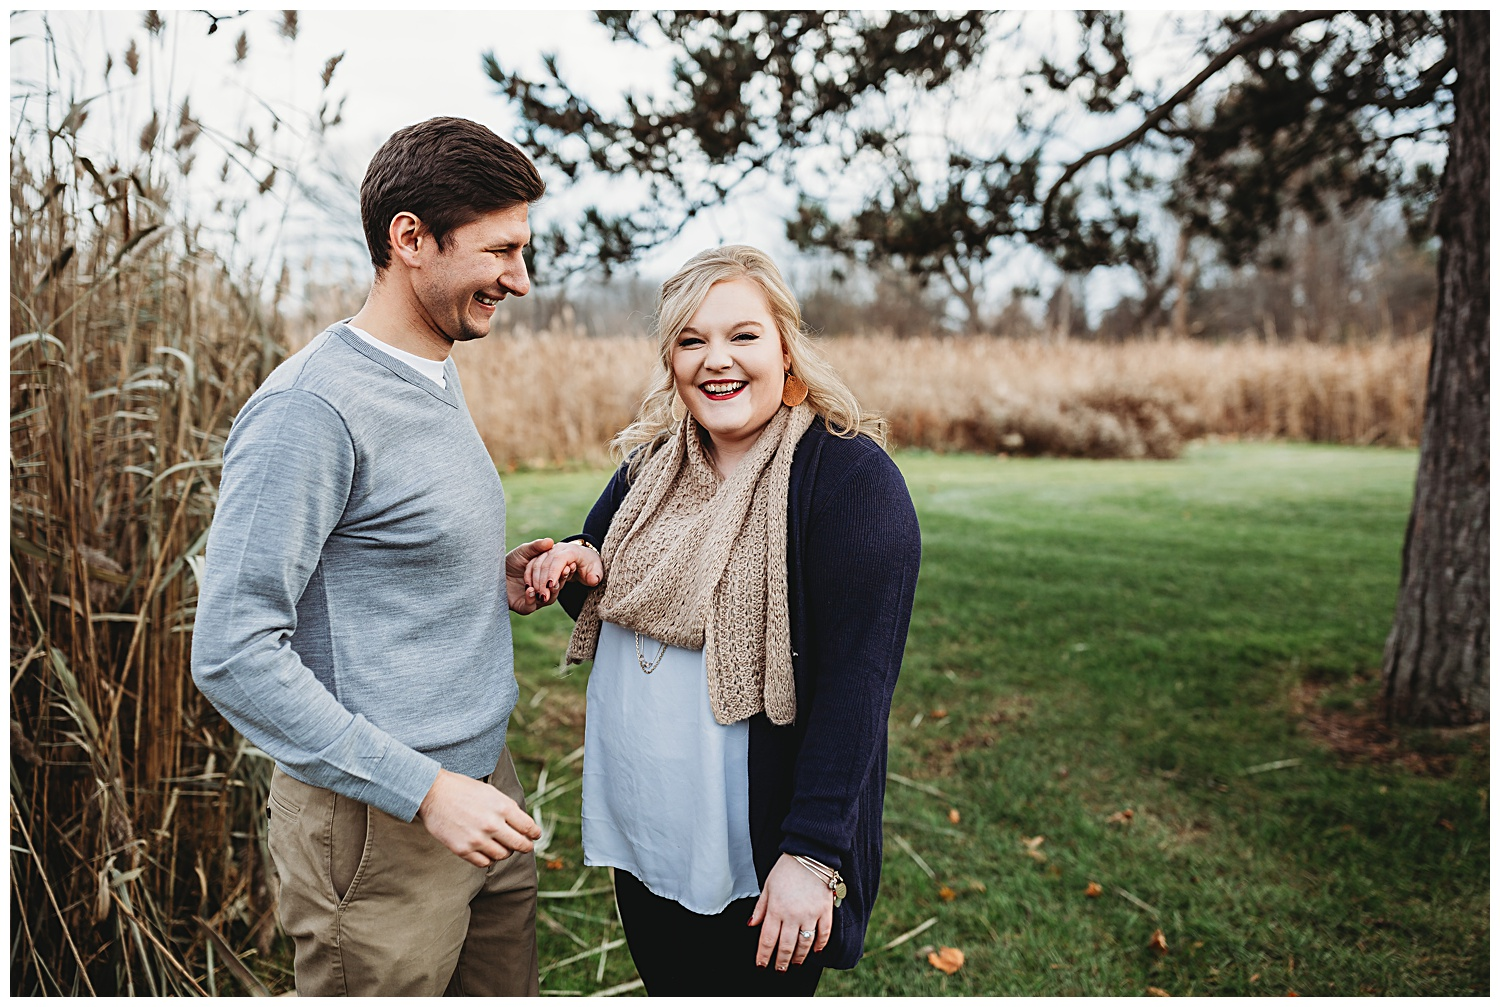 Belle Isle Park Detroit Michigan Engagement Photos_1108.jpg